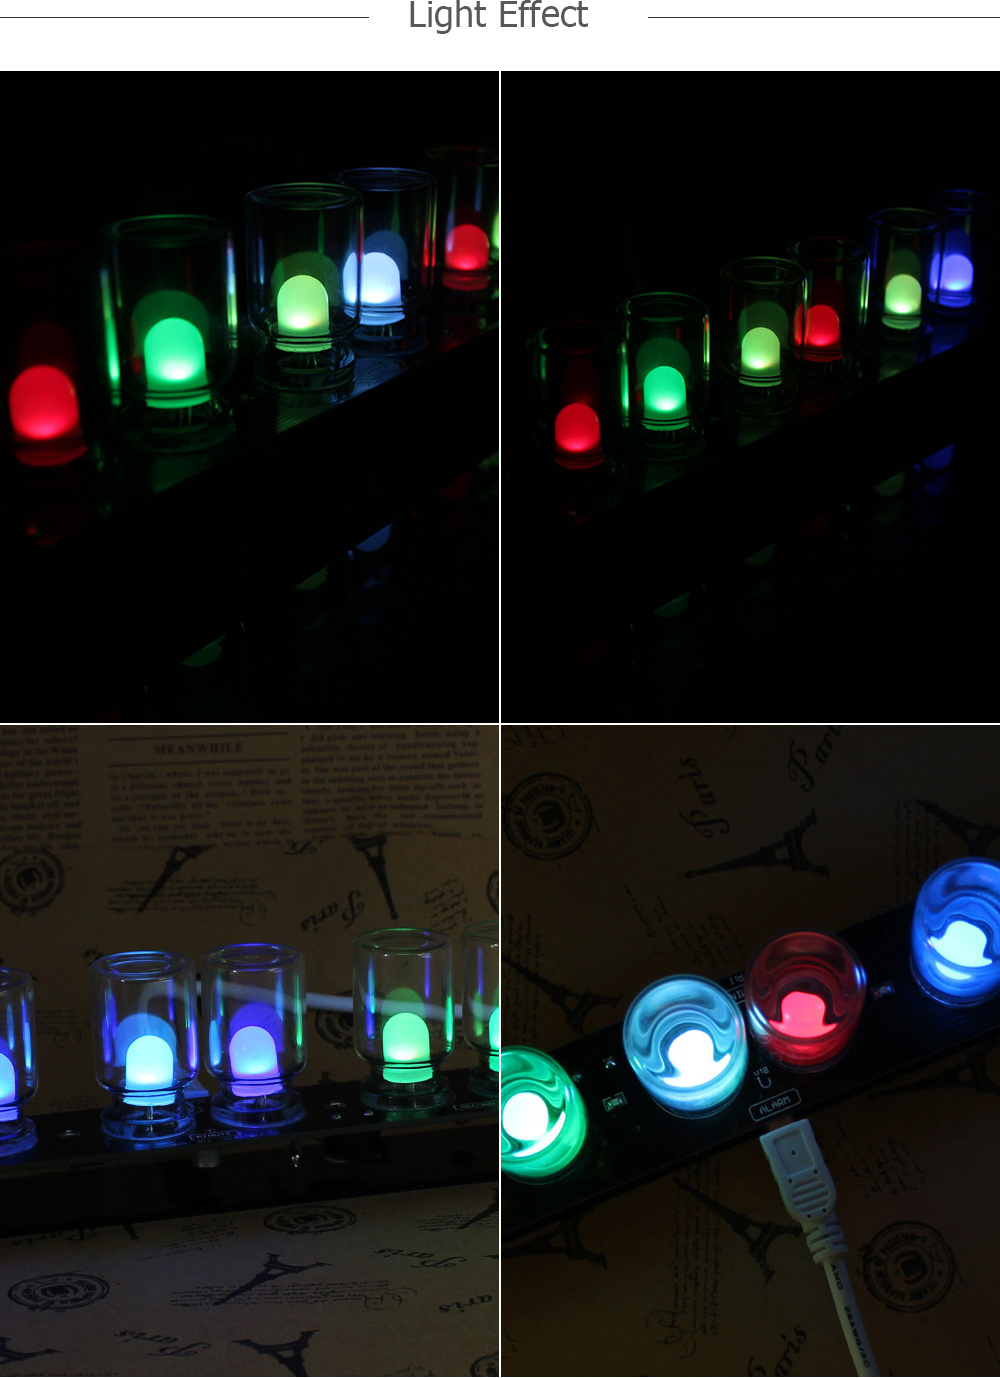 RGB LED Clock Kit for DIY Project